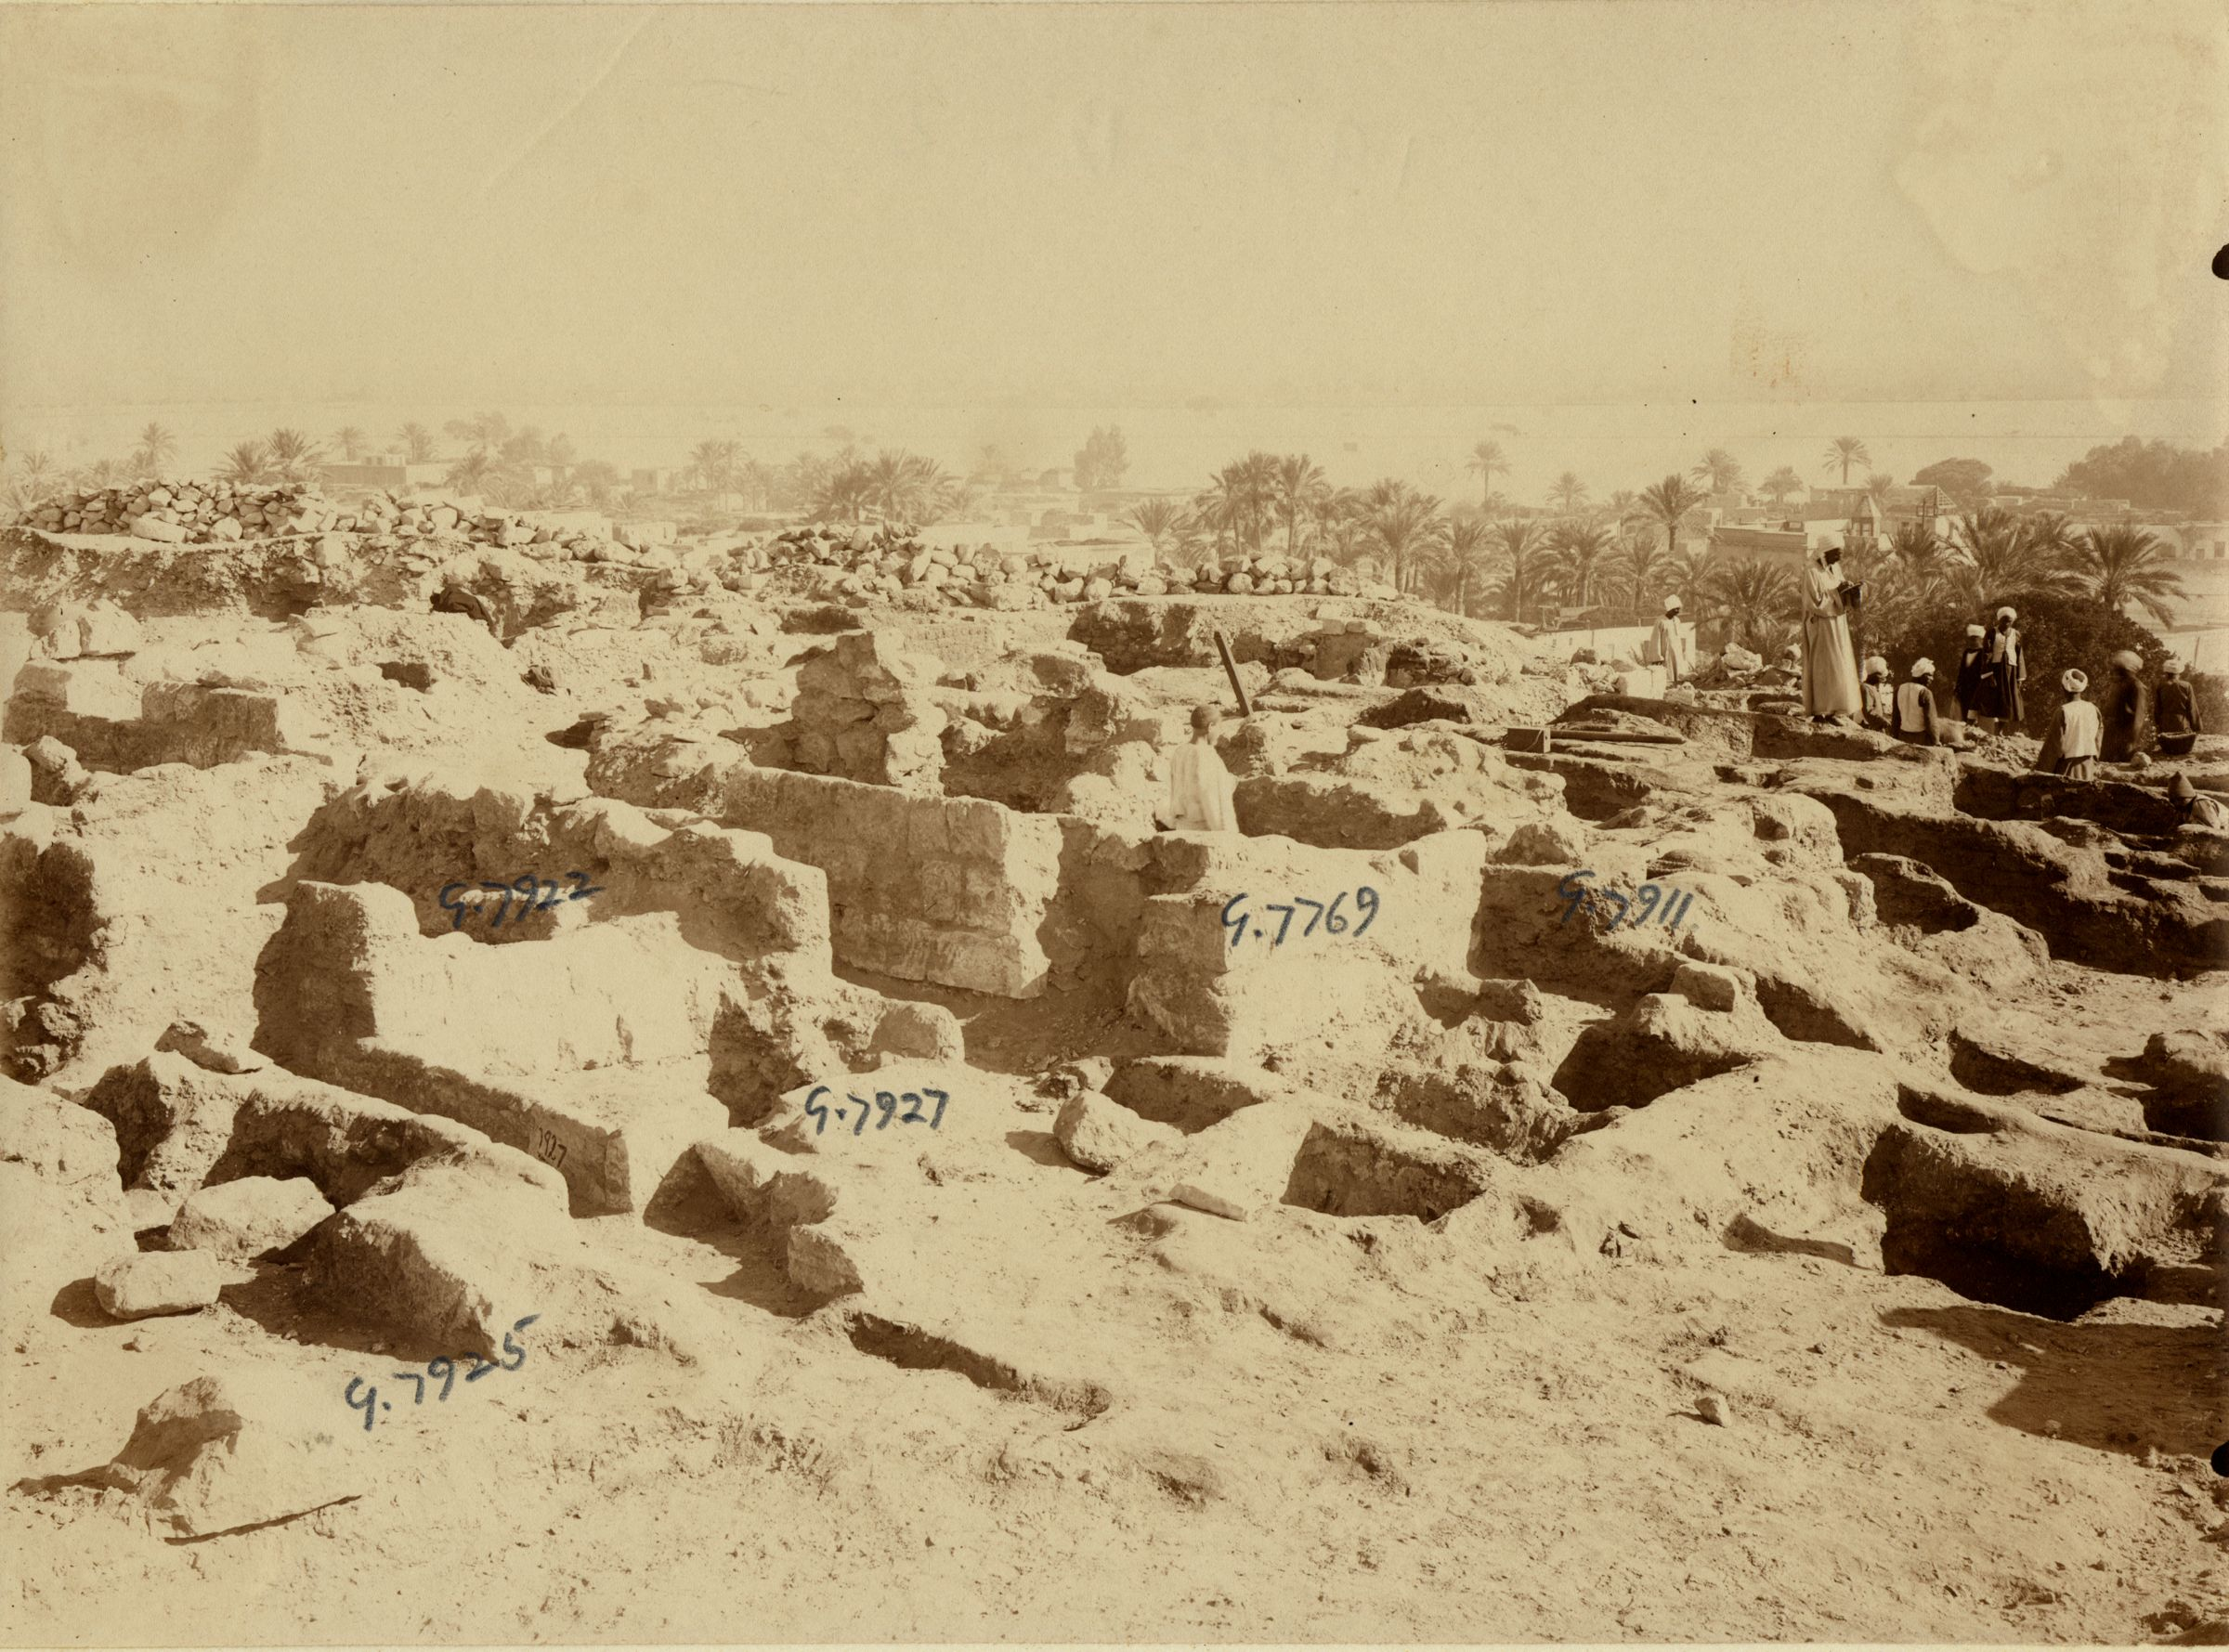 Eastern Cemetery: Site: Giza; View: G 7925, G 7927, G 7922, G 7769, G 7911